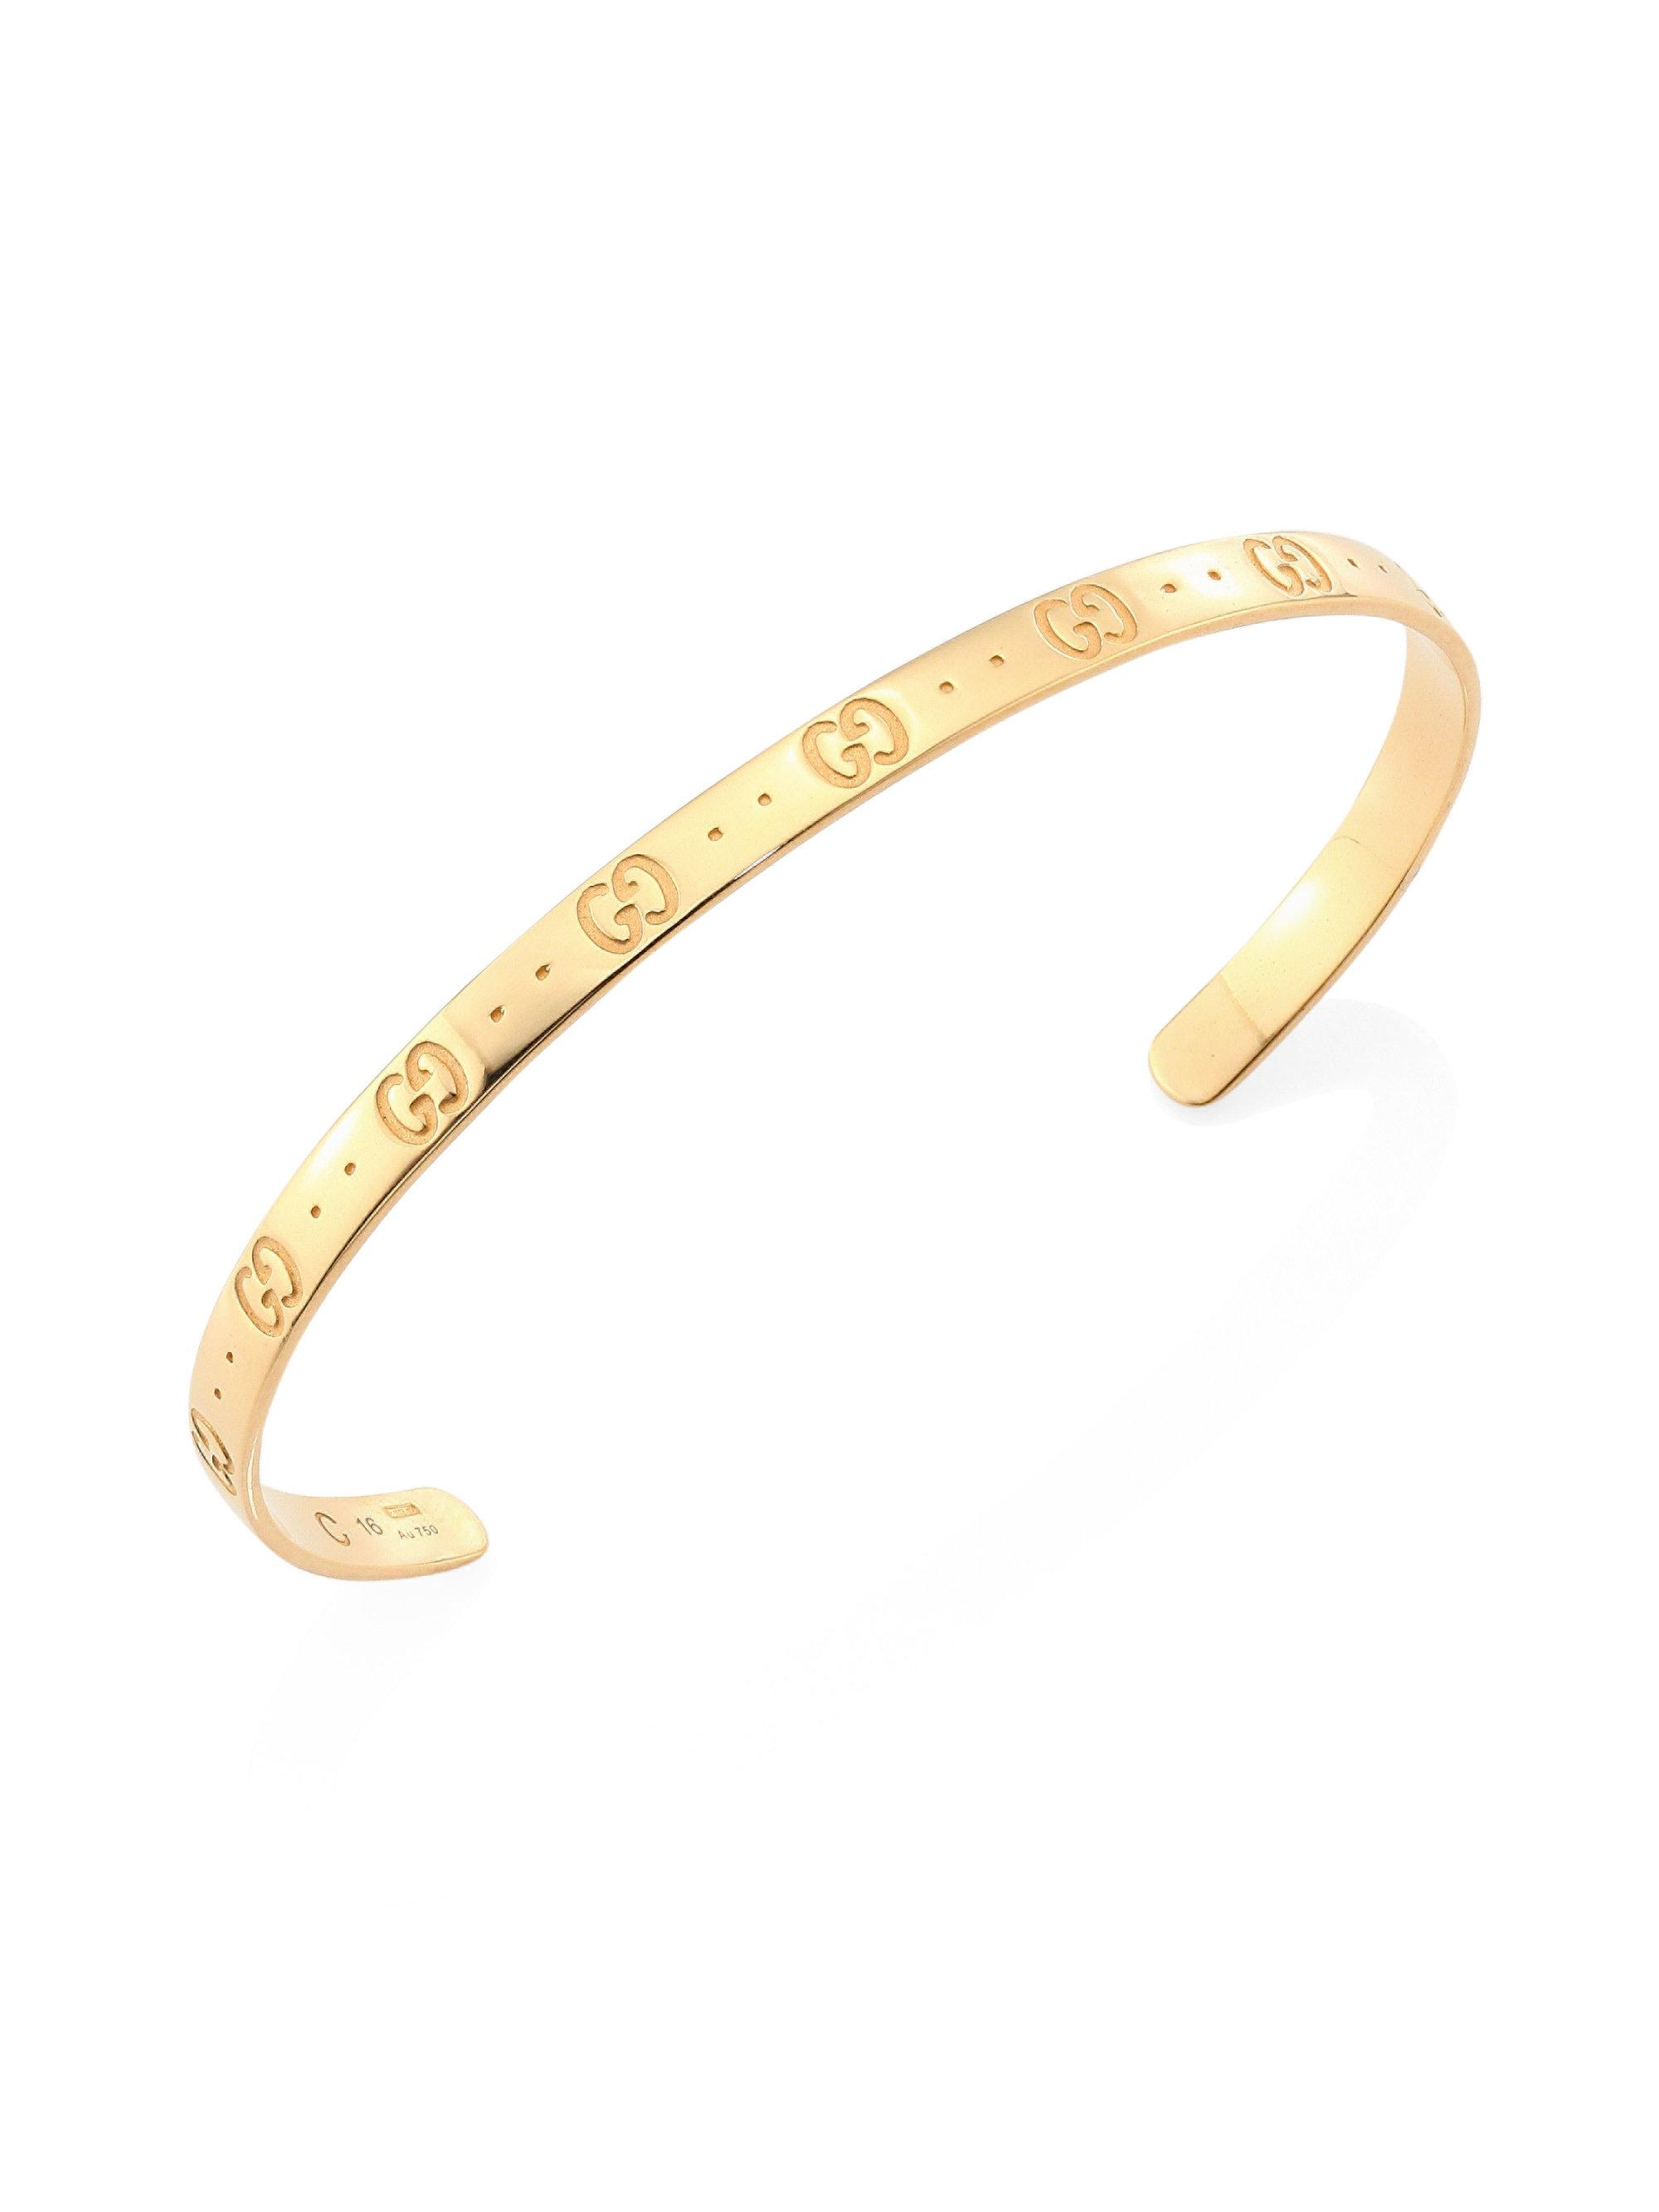 diamonds sapphires img bangle yellow bangles and gold with victorious bracelet products